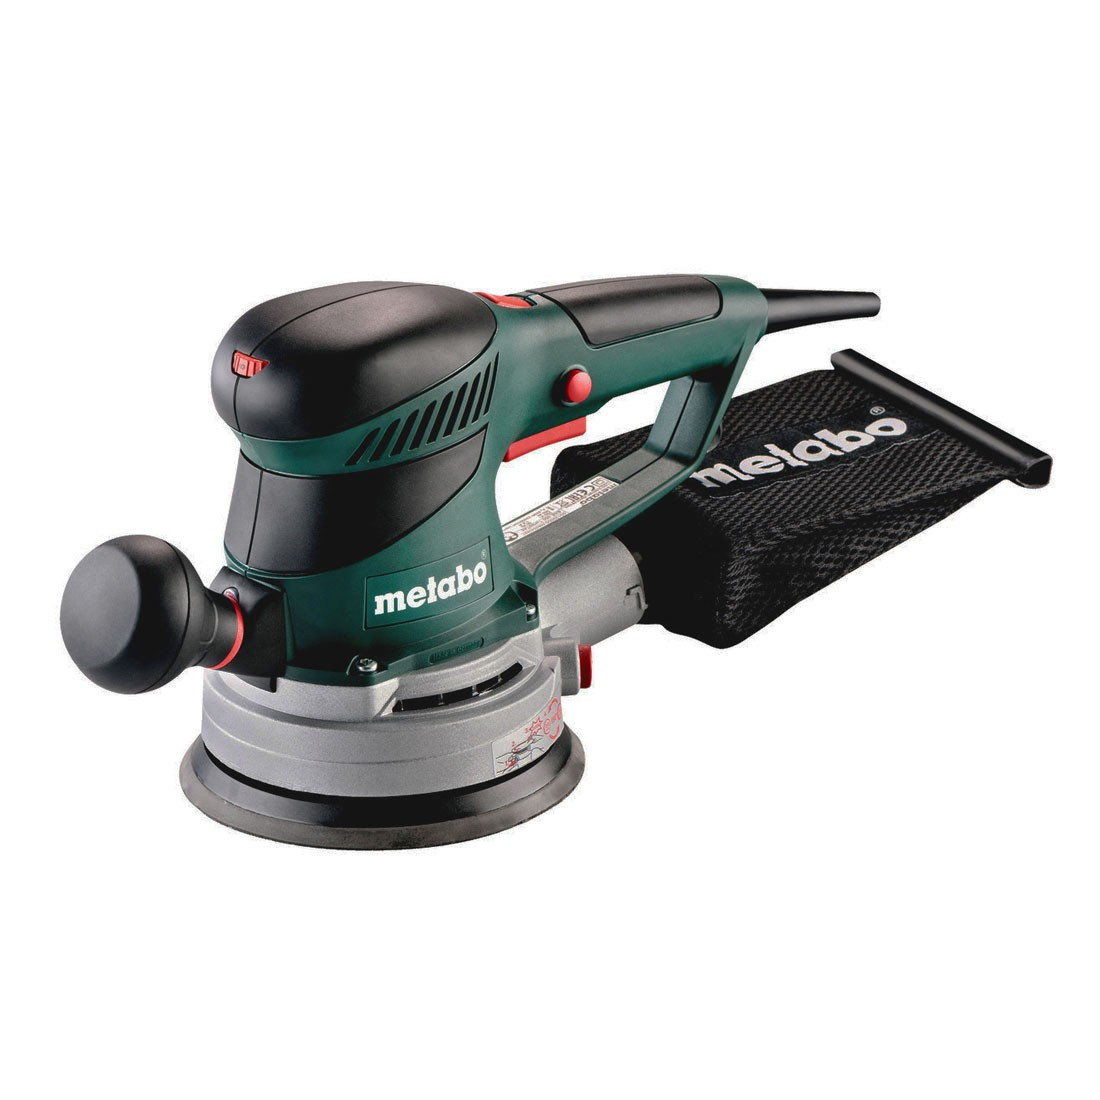 metabo sxe 450 150mm turbotec random orbit disc sander powertool world. Black Bedroom Furniture Sets. Home Design Ideas